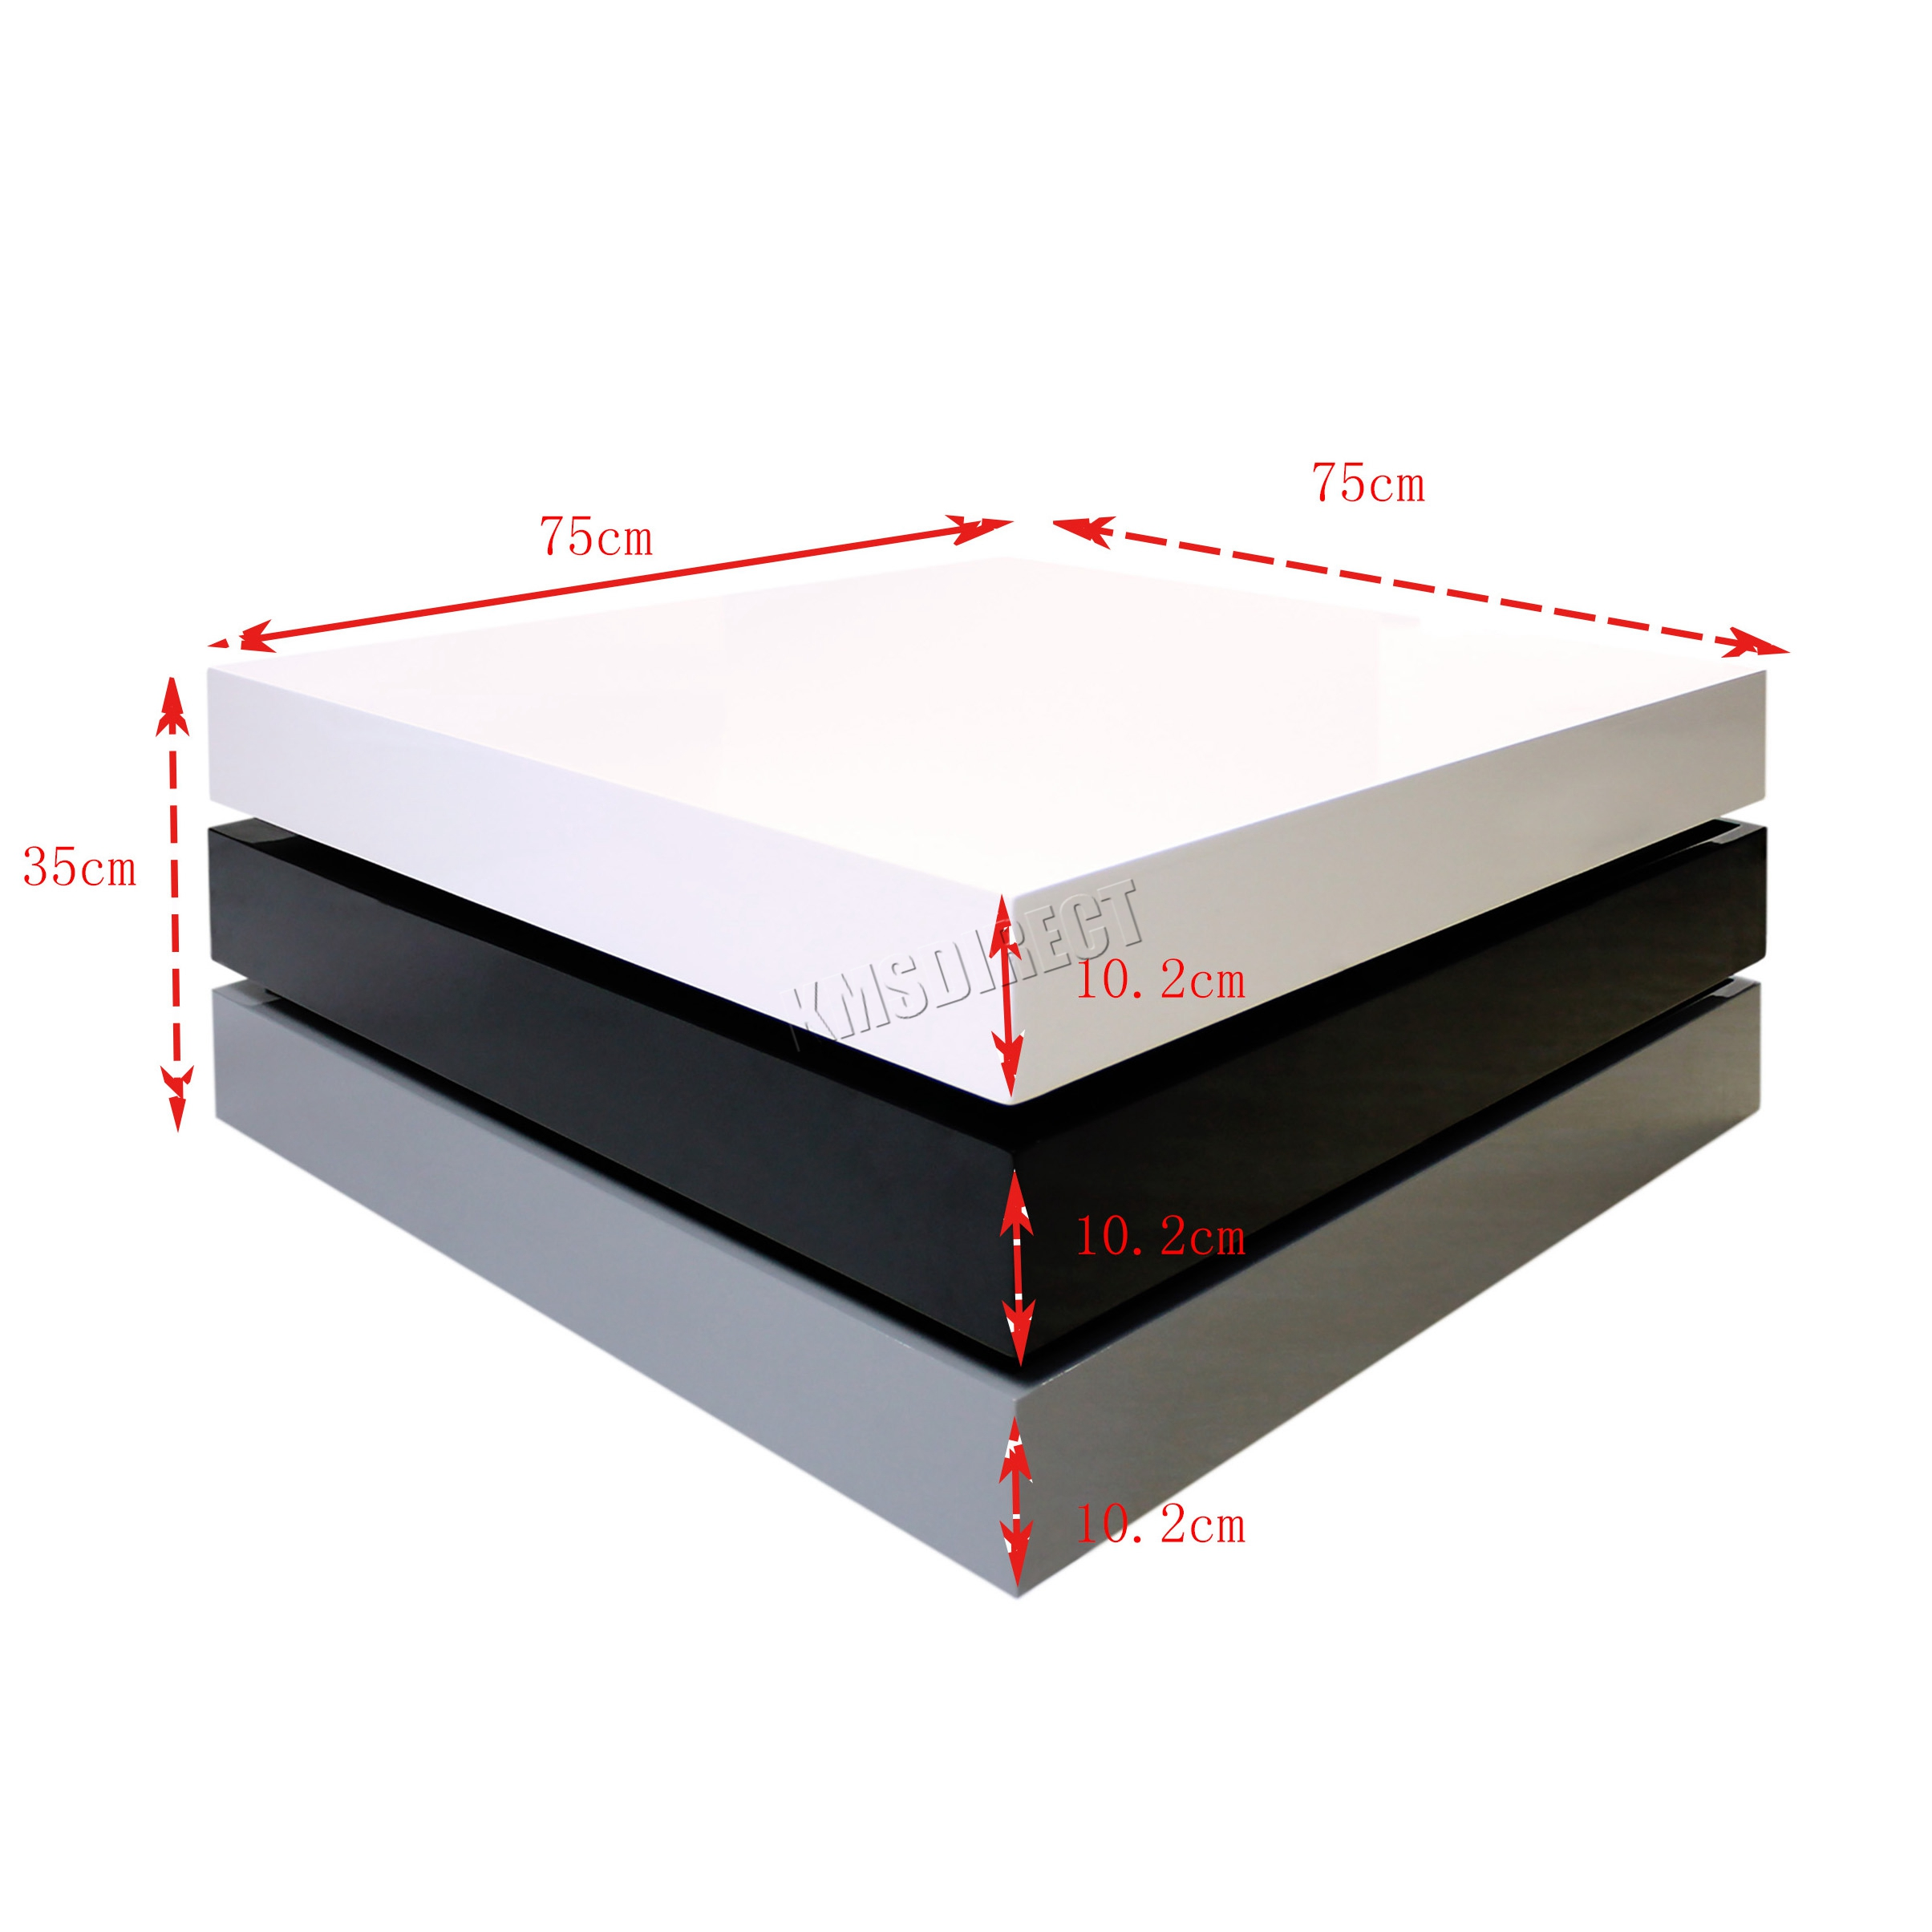 Coffee Table 3 Layers White High Gloss: FoxHunter Rotating Coffee Table 3 Layers High Gloss MDF